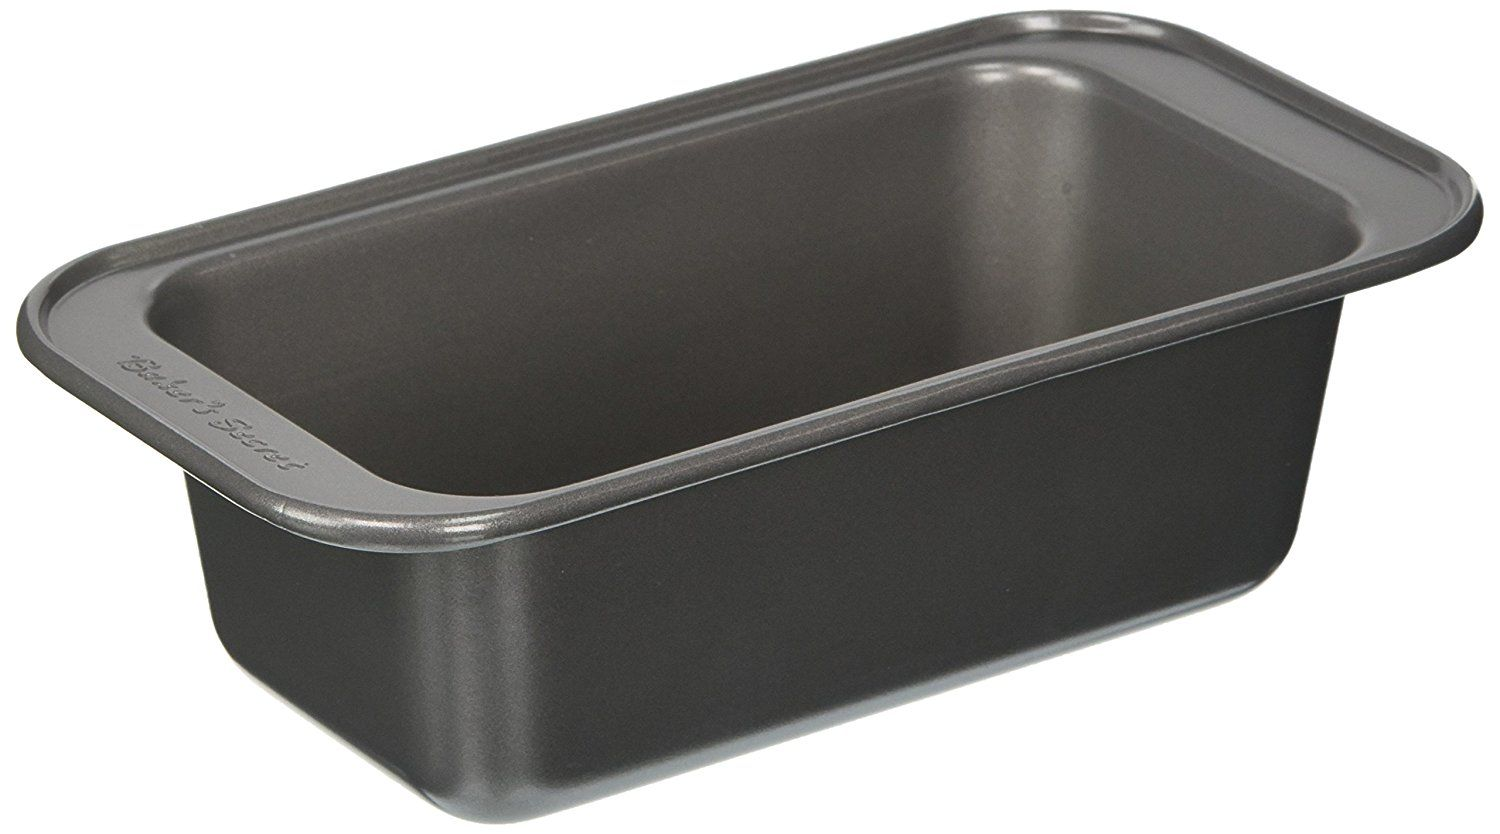 WORLD KITCHEN 1164170 Loaf Pan, Small, Metallic > Insider's special offer that you can't miss : Baking pans